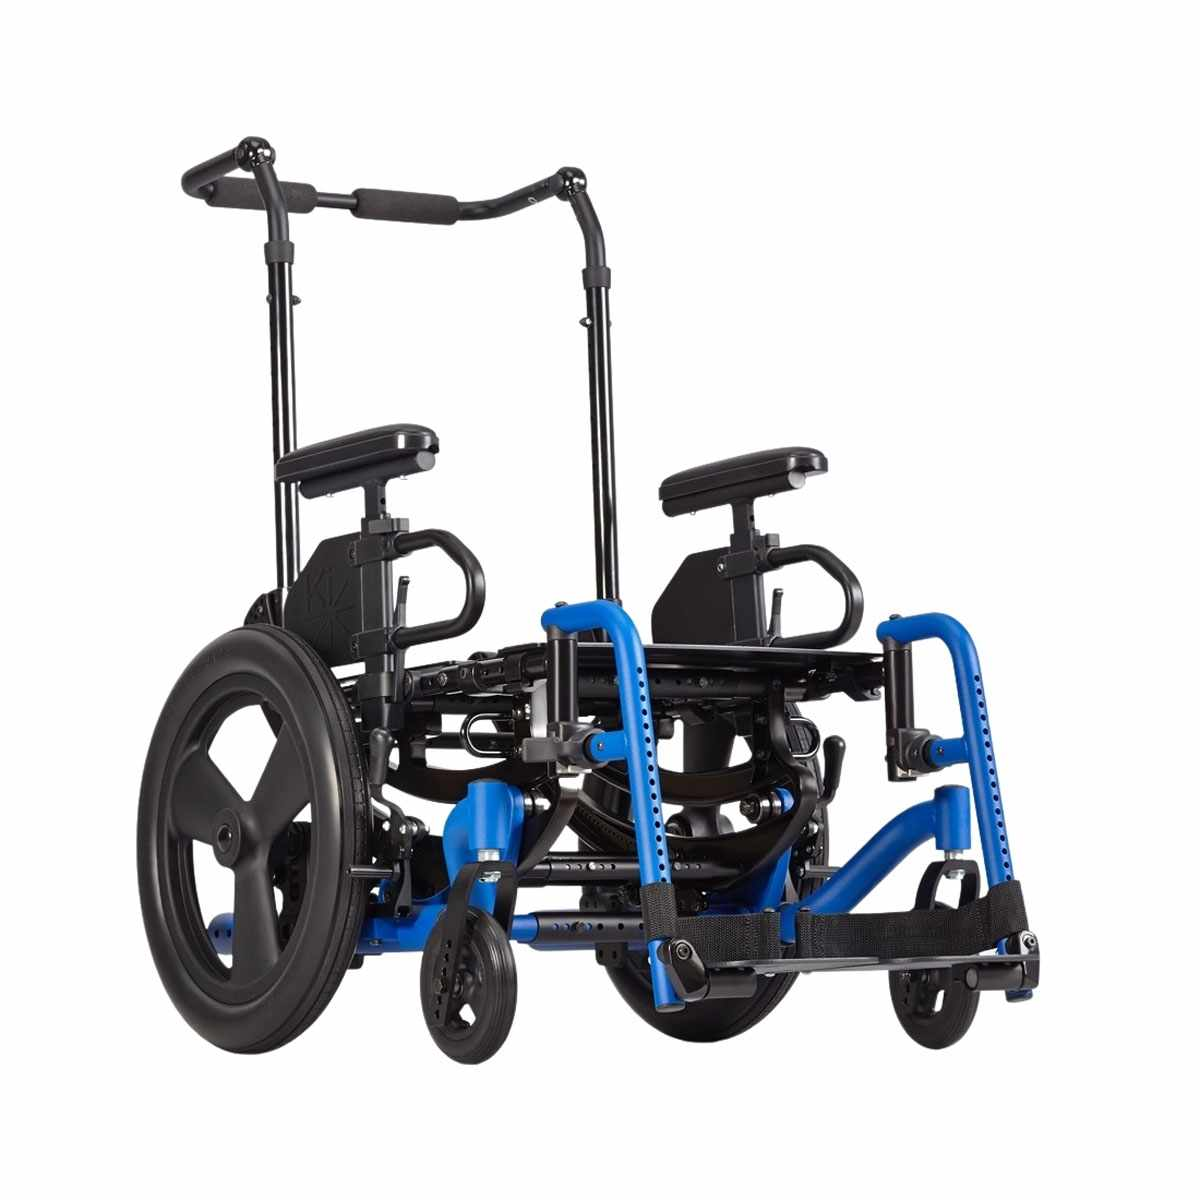 Ki Mobility Focus CR tilt wheelchair